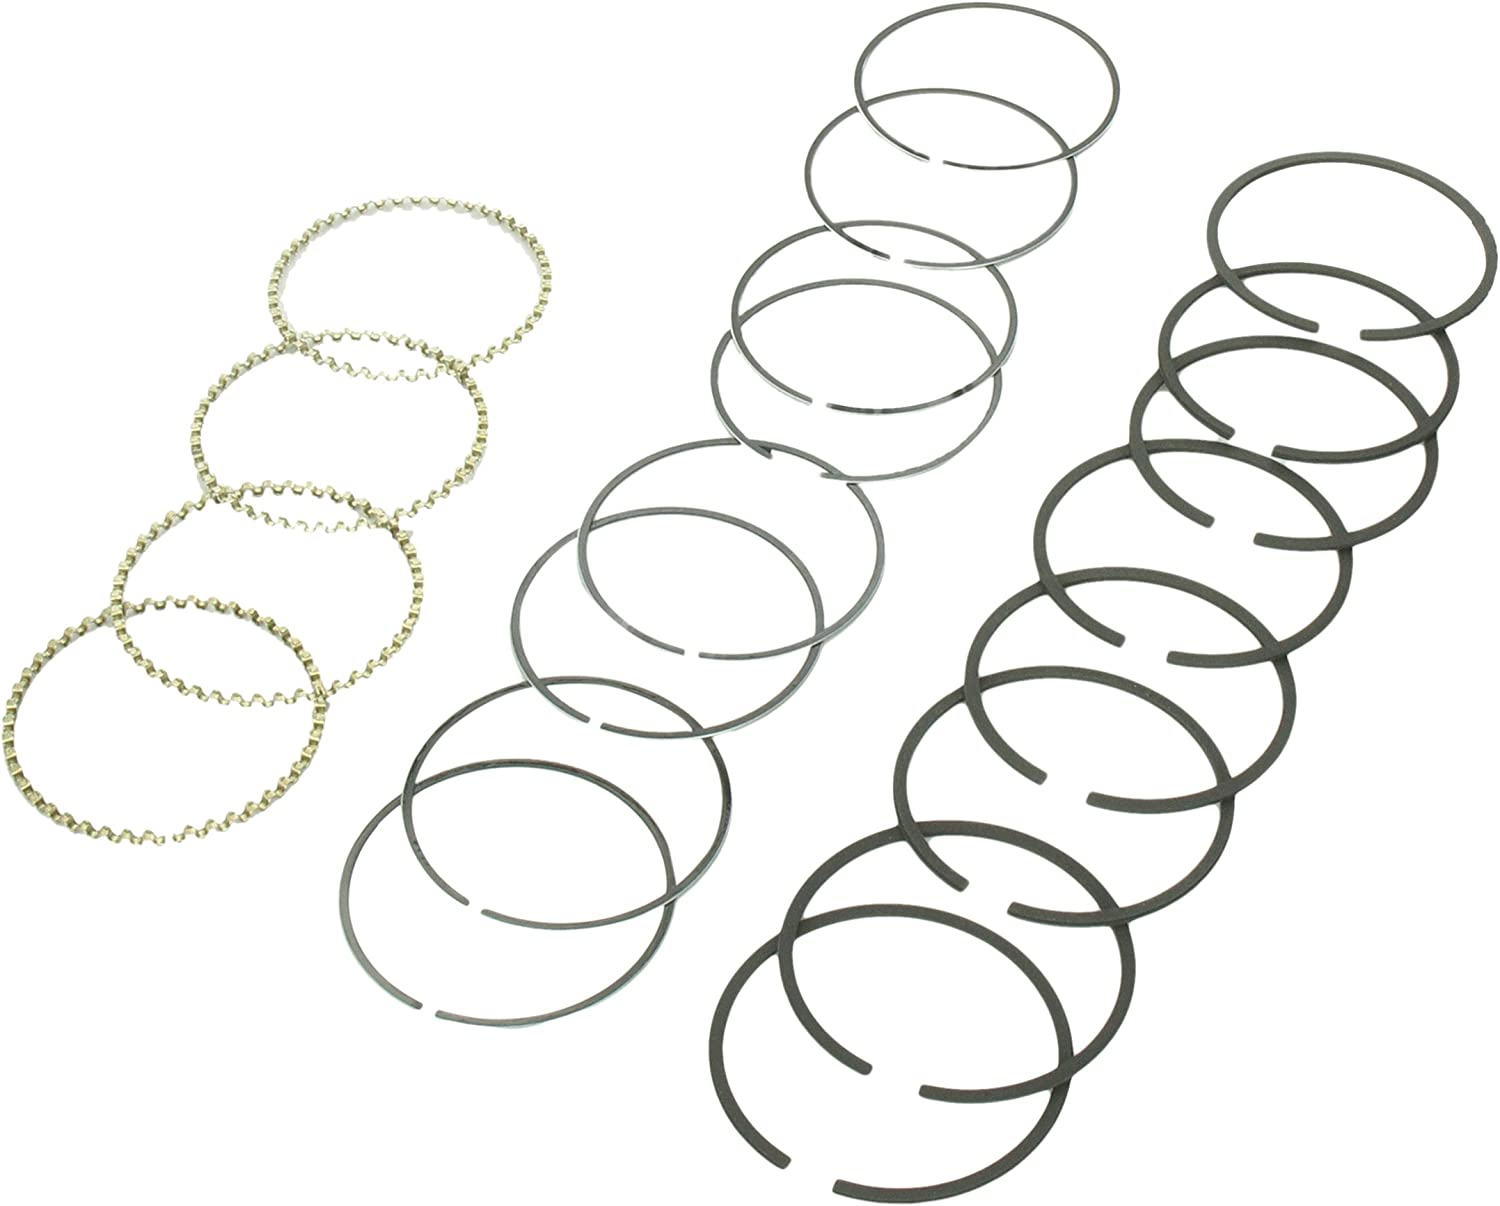 Milwaukee Mall Hastings 6872 4-Cylinder Set Piston Max 66% OFF Ring